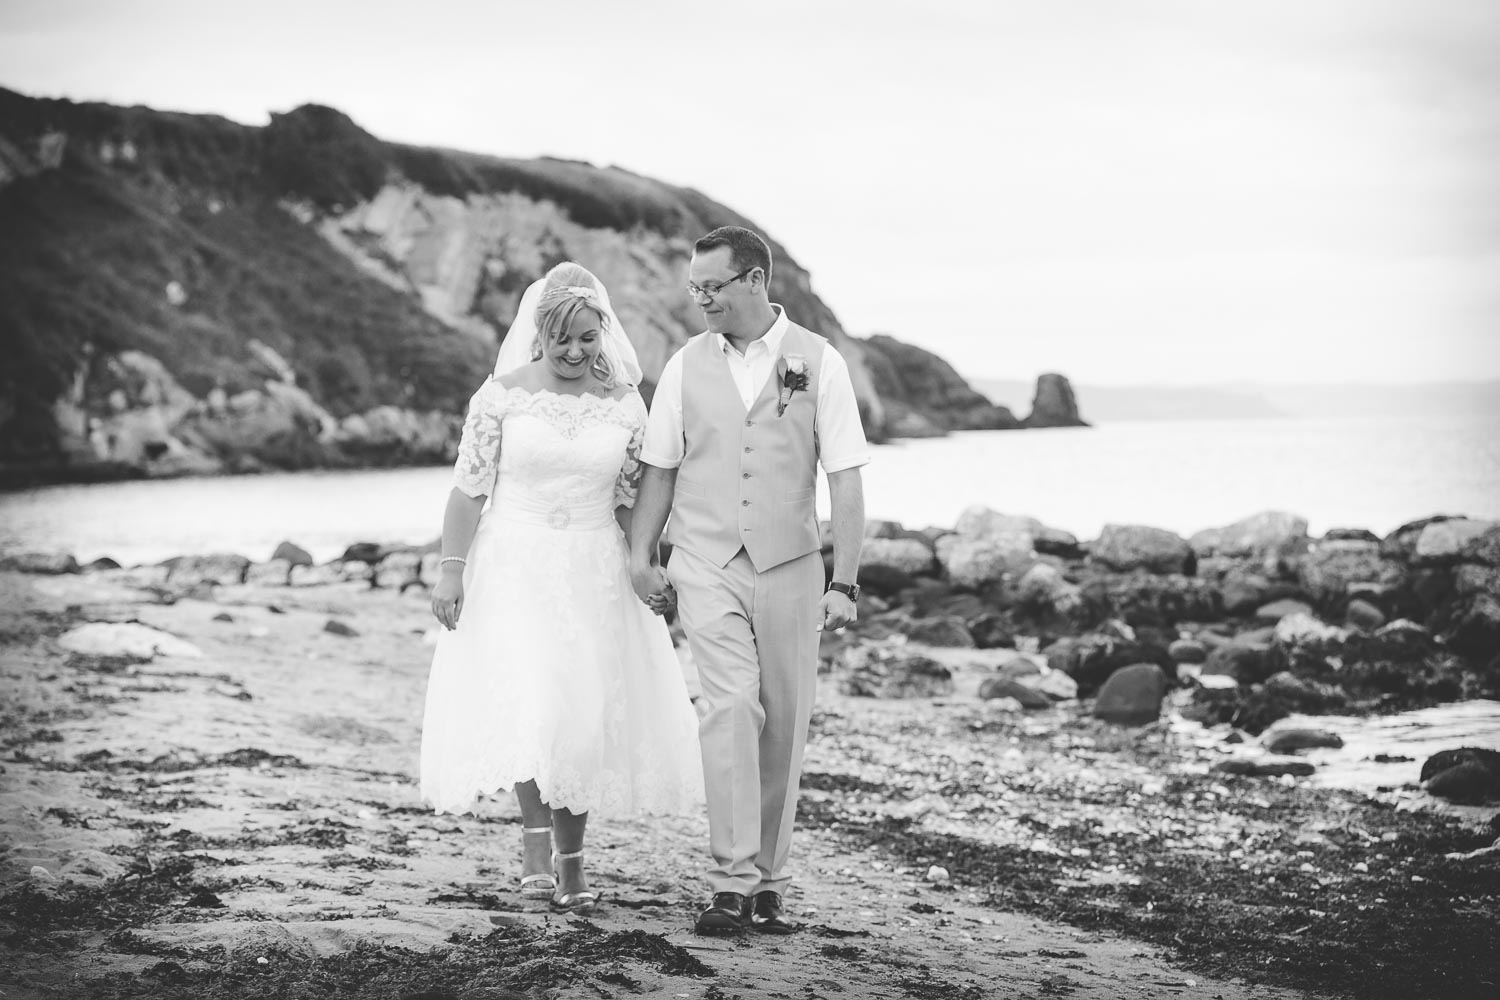 Bride and Groom walking on beach black and white